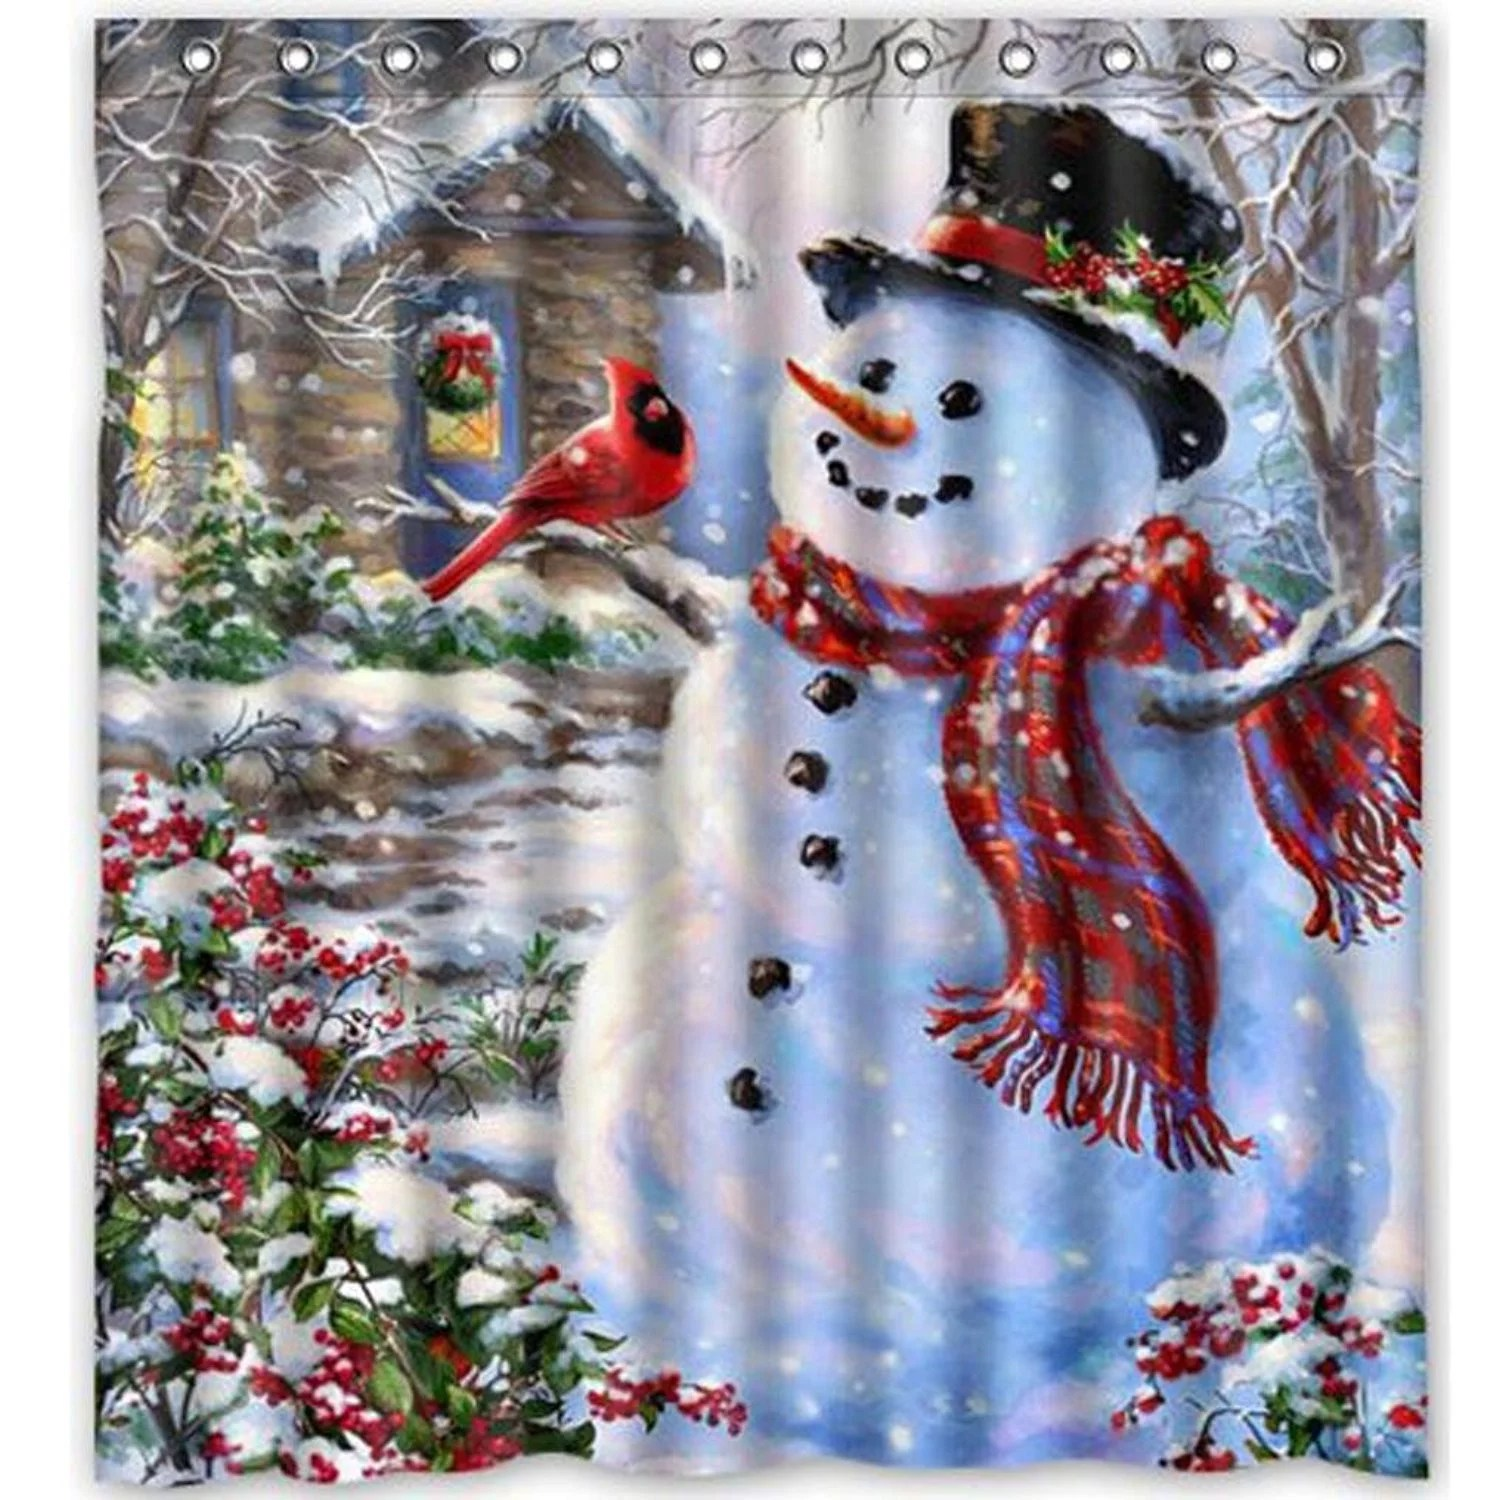 greendecor winter holiday merry christmas happy snowman and cardinals waterproof shower curtain set with hooks bathroom accessories size 66x72 inches